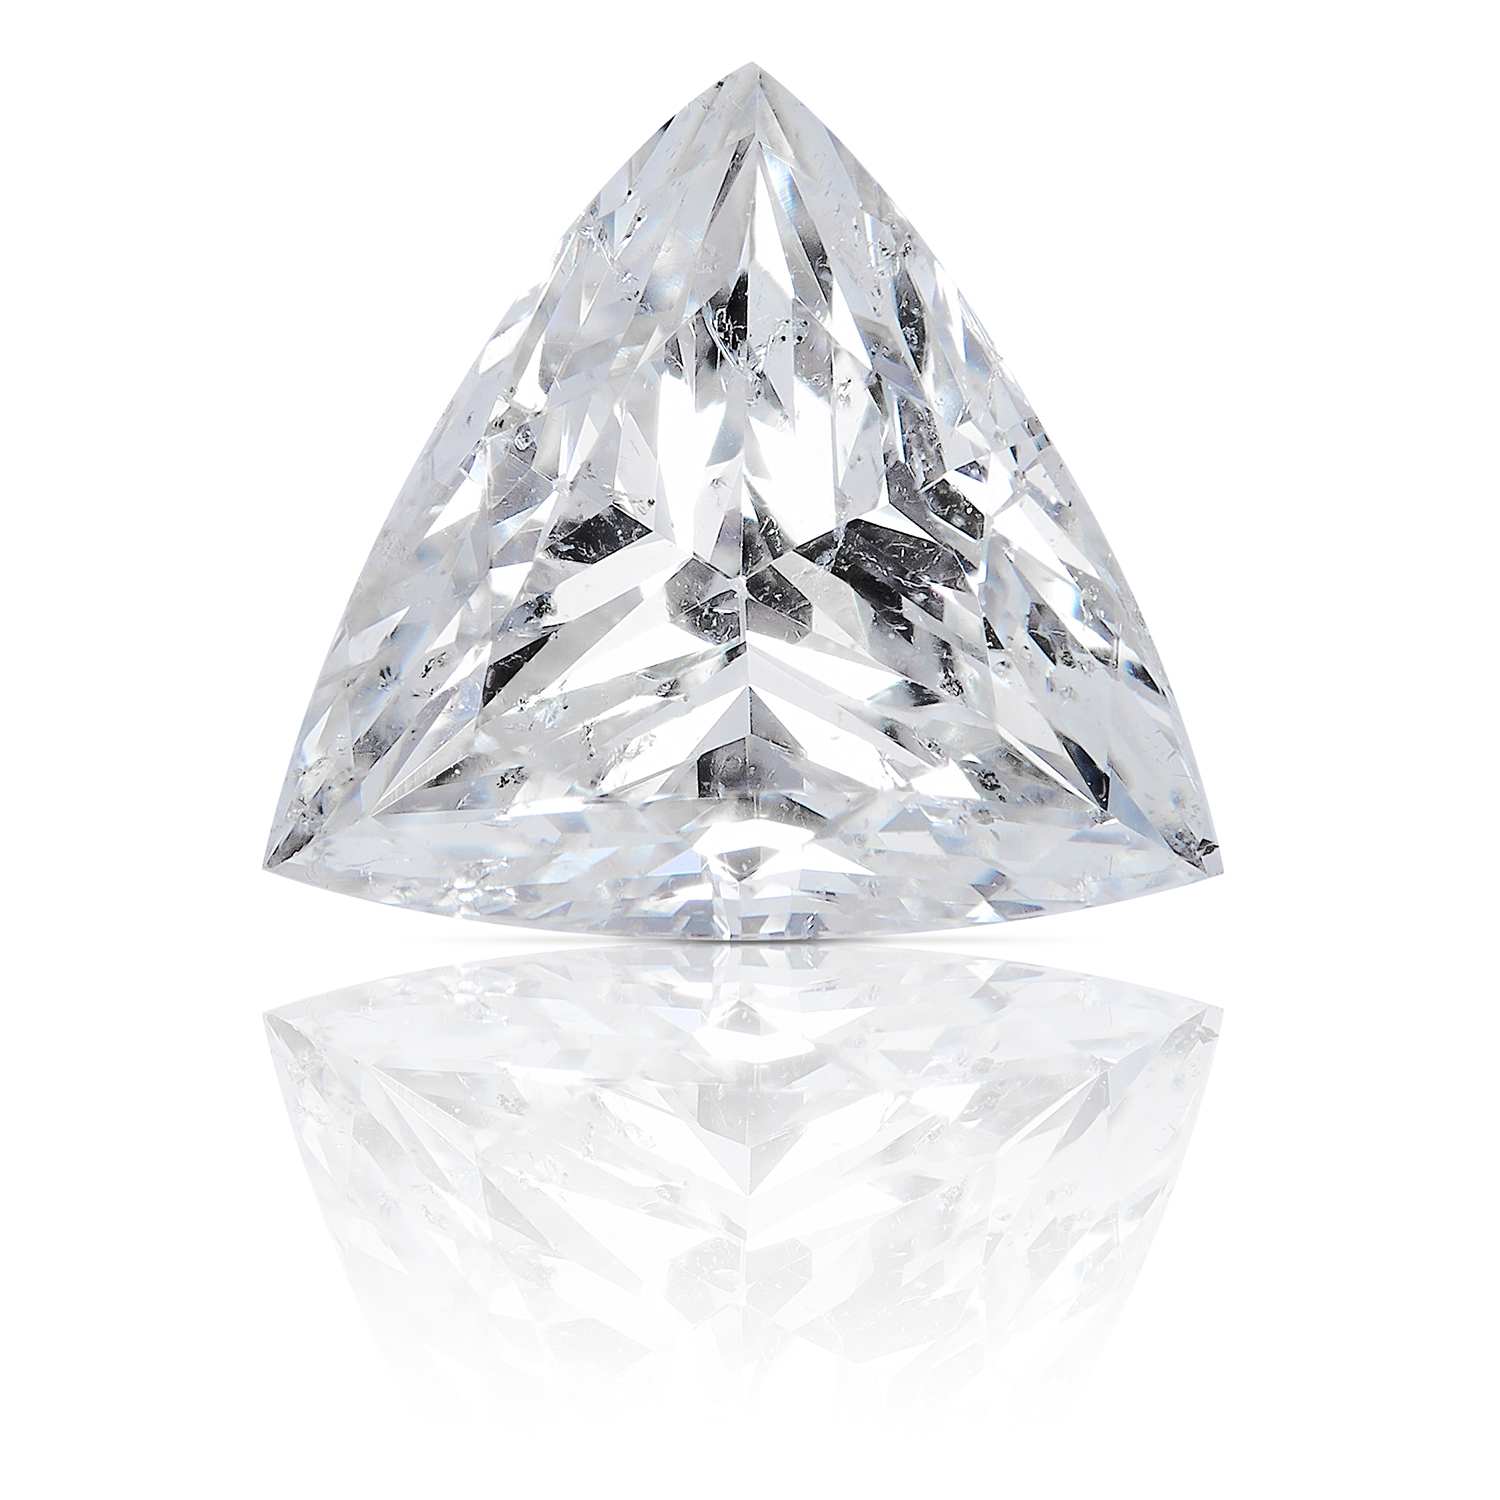 A 1.12ct MODERN TRILLION CUT DIAMOND, UNMOUNTED.